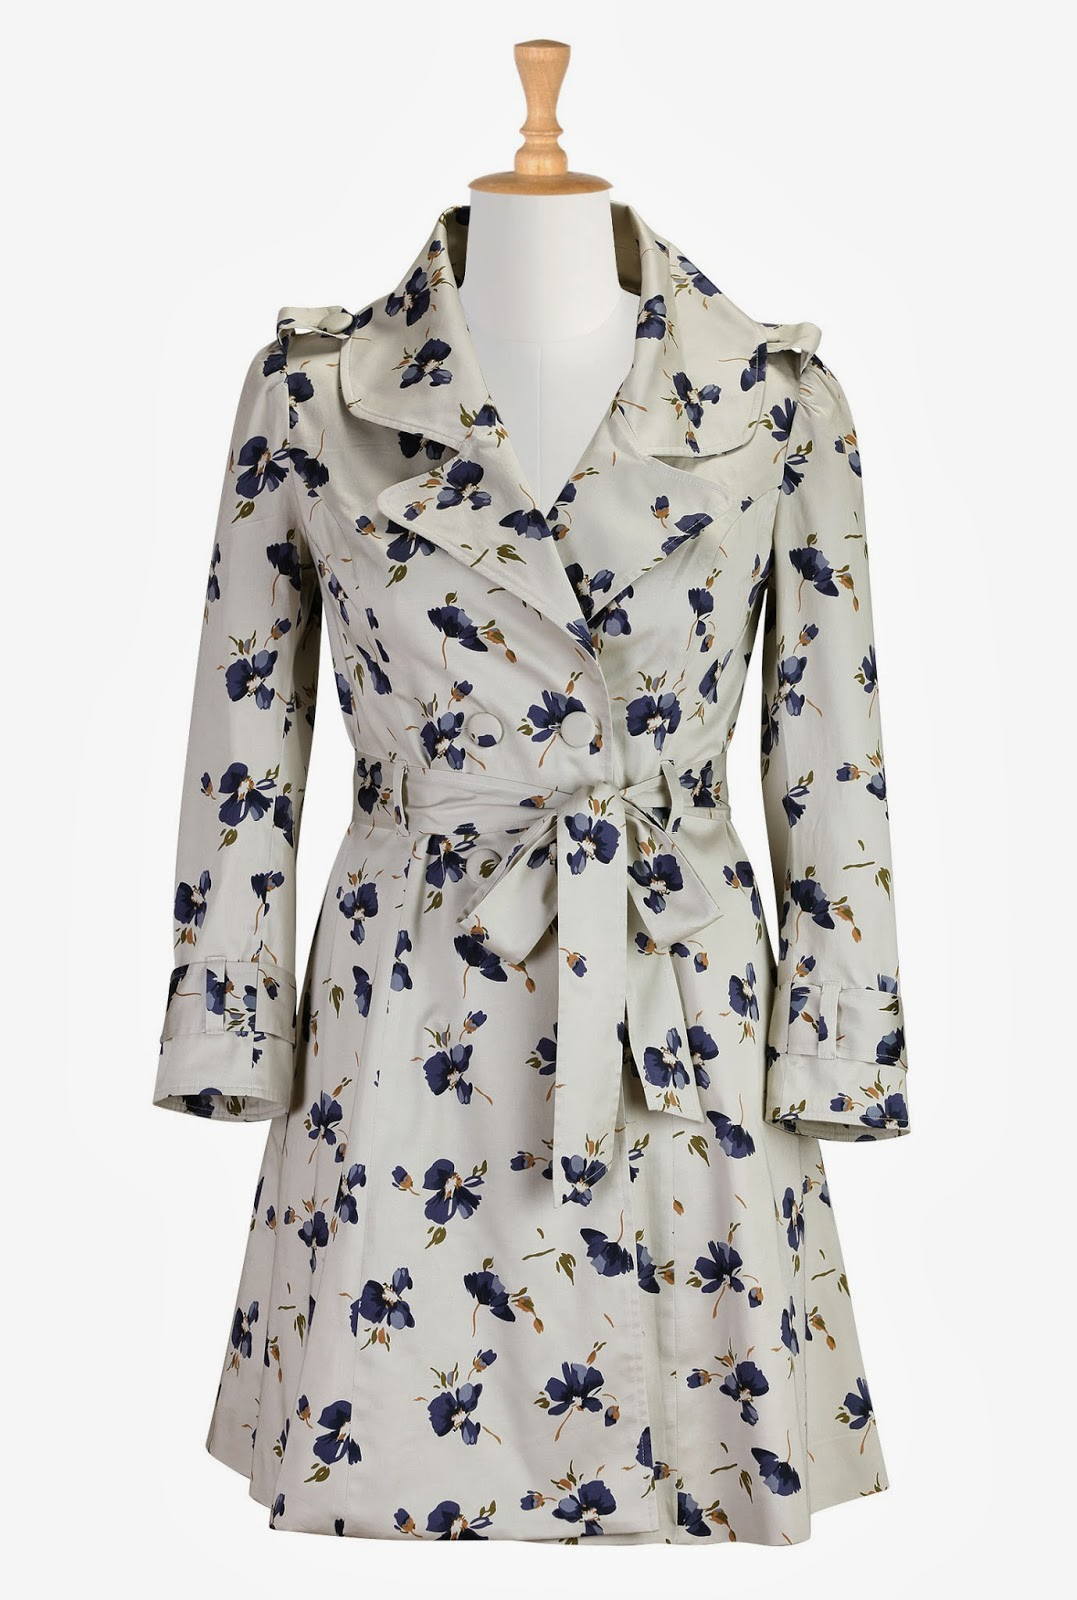 http://www.eshakti.com/Product/CL0030492/Floral-print-belted-trench